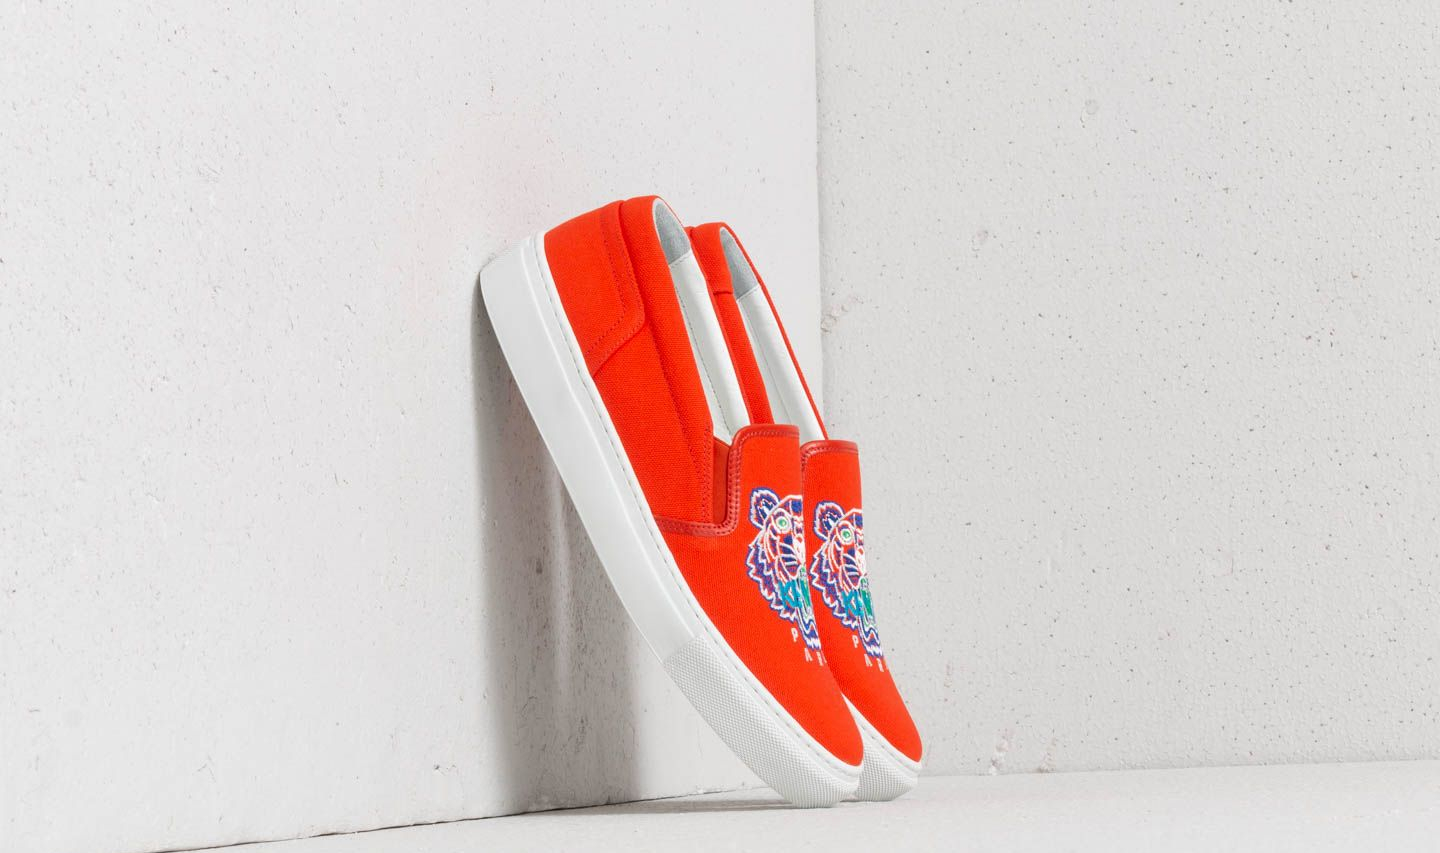 dd672c6ffb5 Kenzo K-Skate Tiger Sneakers Orange